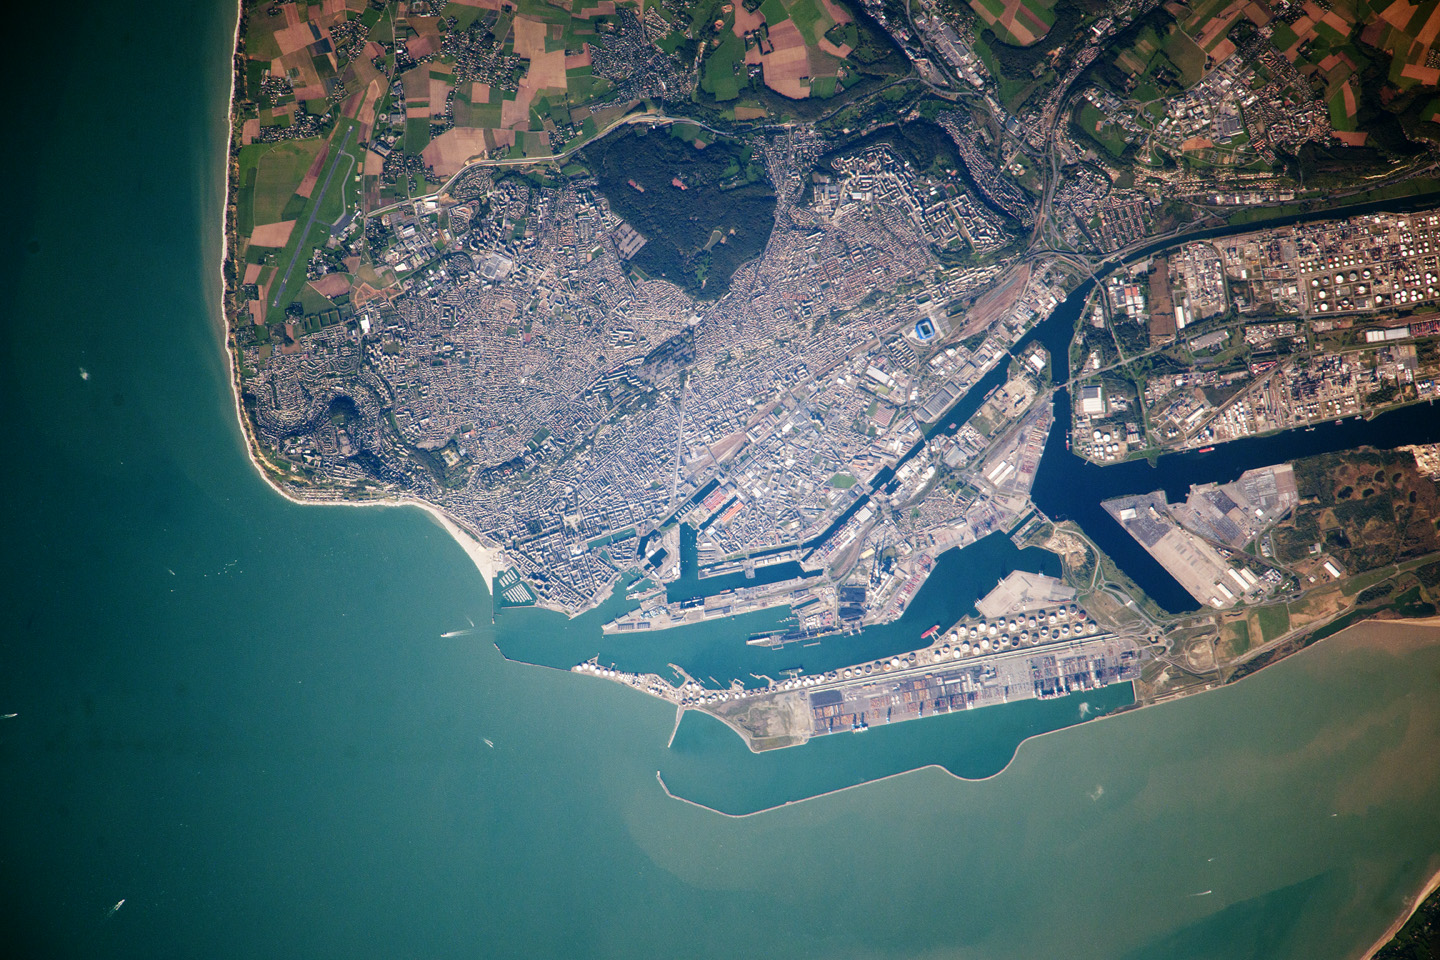 Today's Image of the Day comes courtesy of the NASA Earth Observatory and features a look at the city of Le Havre, France and the English Channel.